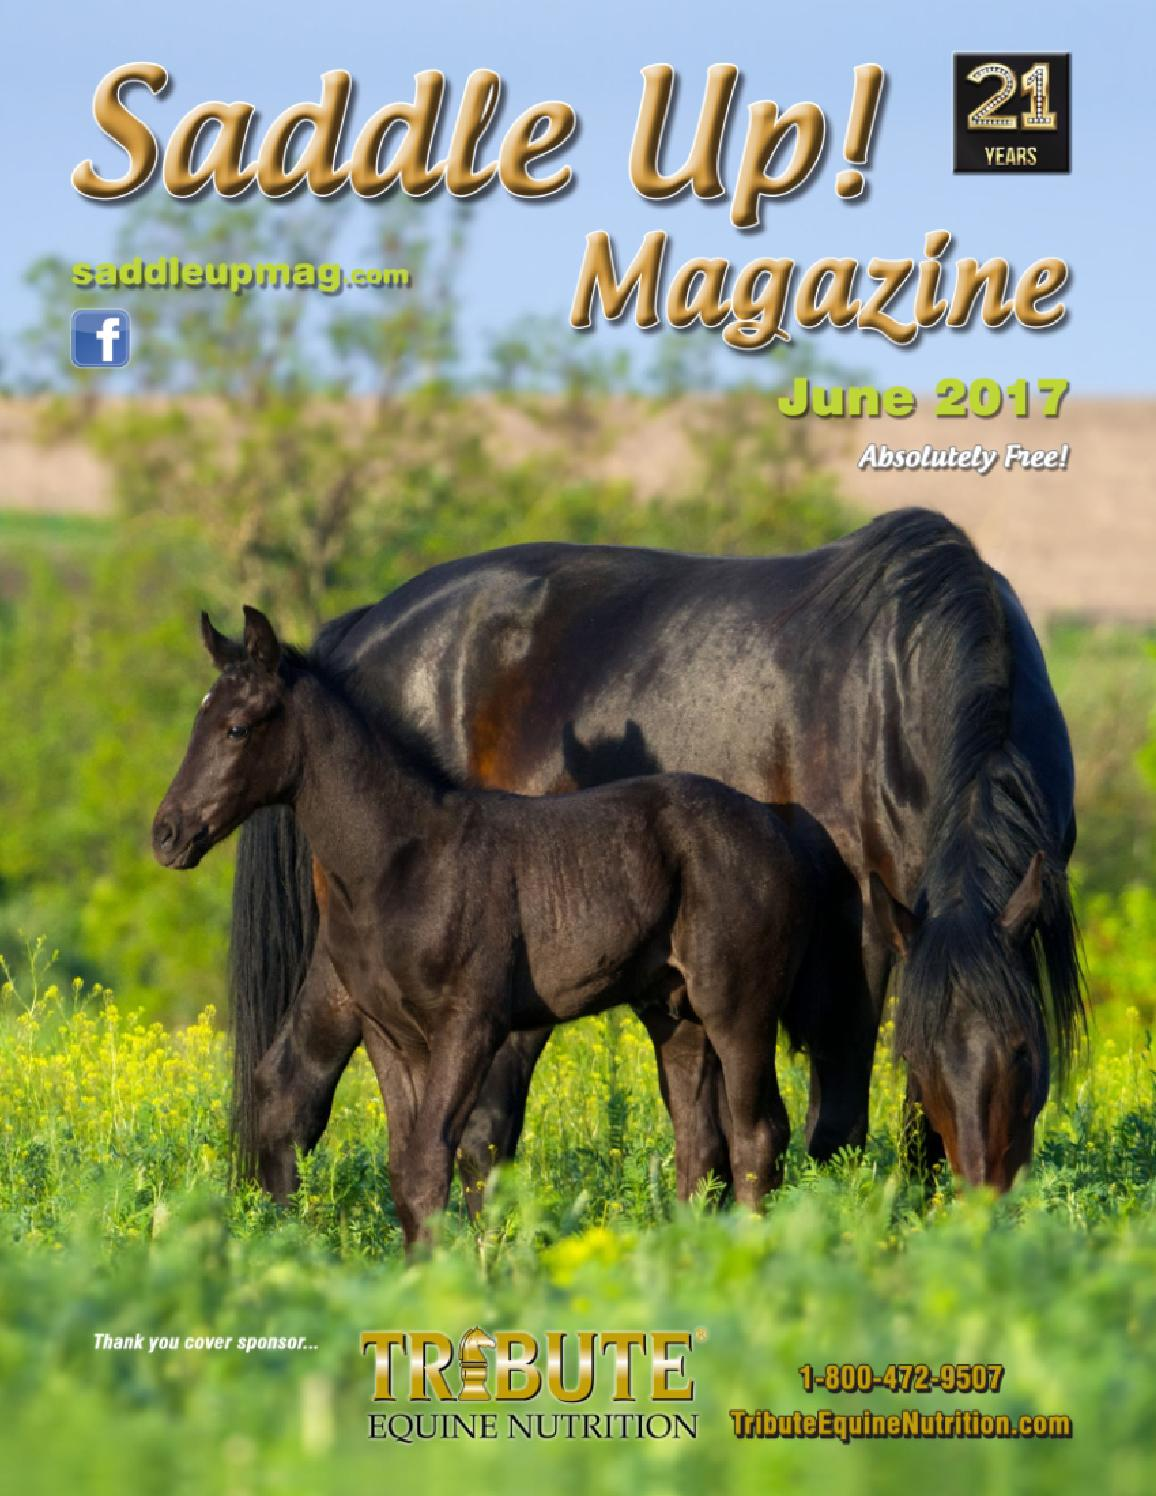 June 2017 Saddle Up Magazine By Issuu The Fourwire Electric Fence System Allows Landowners To Control Deer